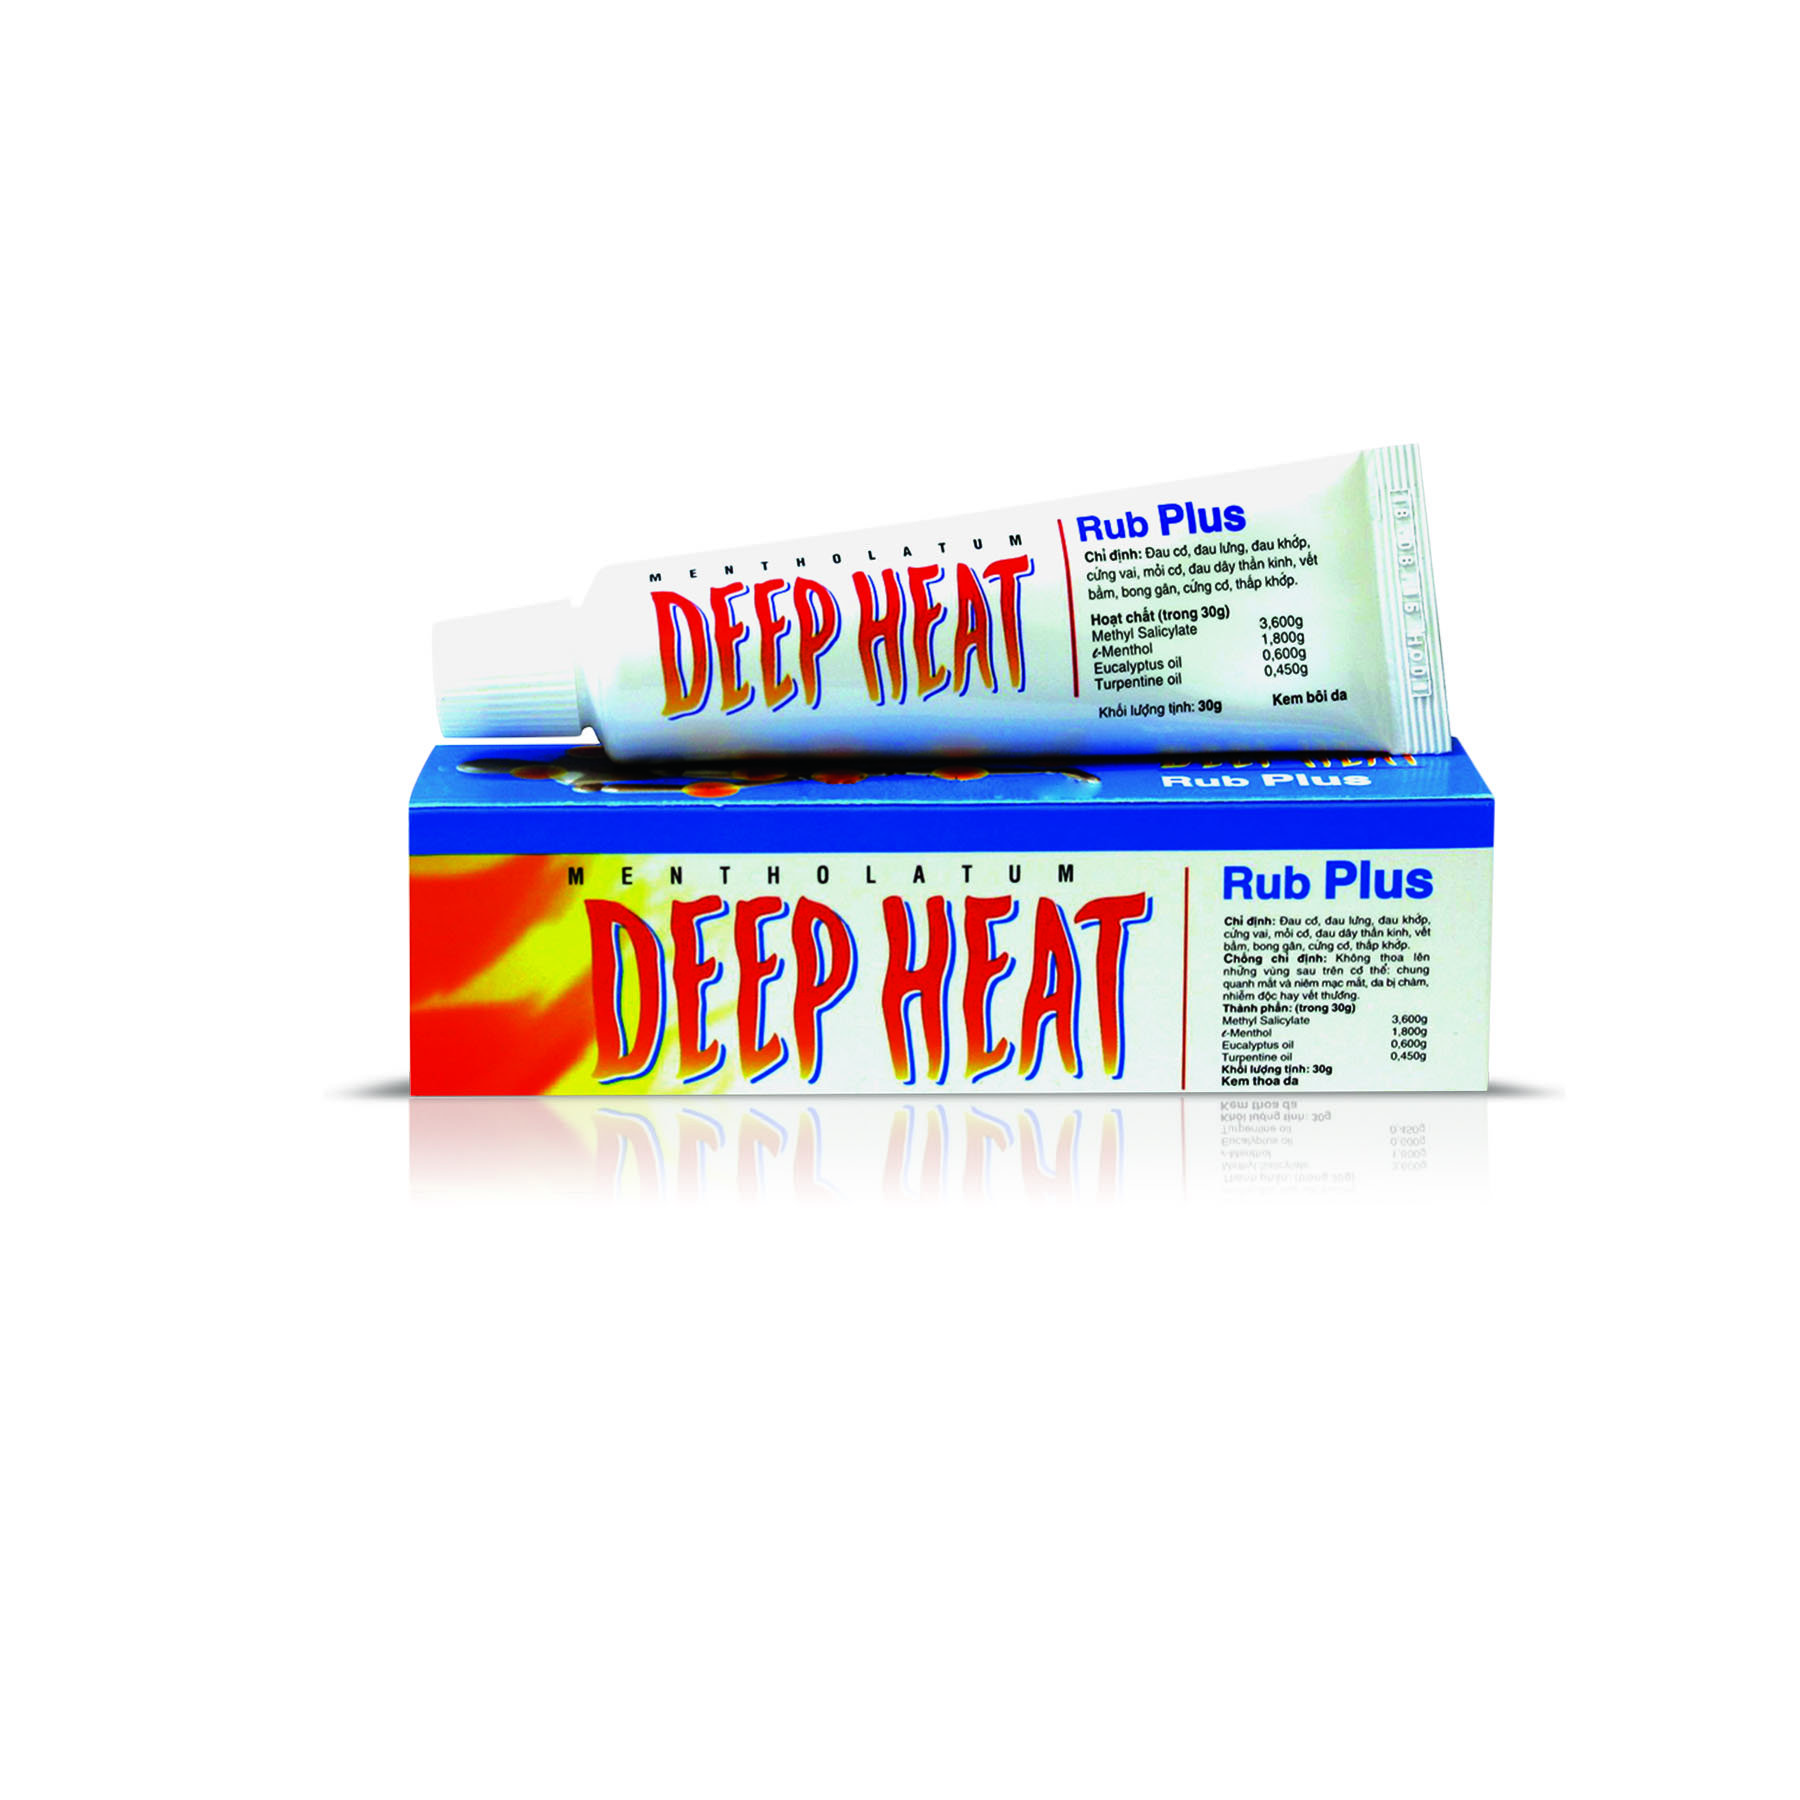 Deep Heat Rub Plus Cream, 30gm